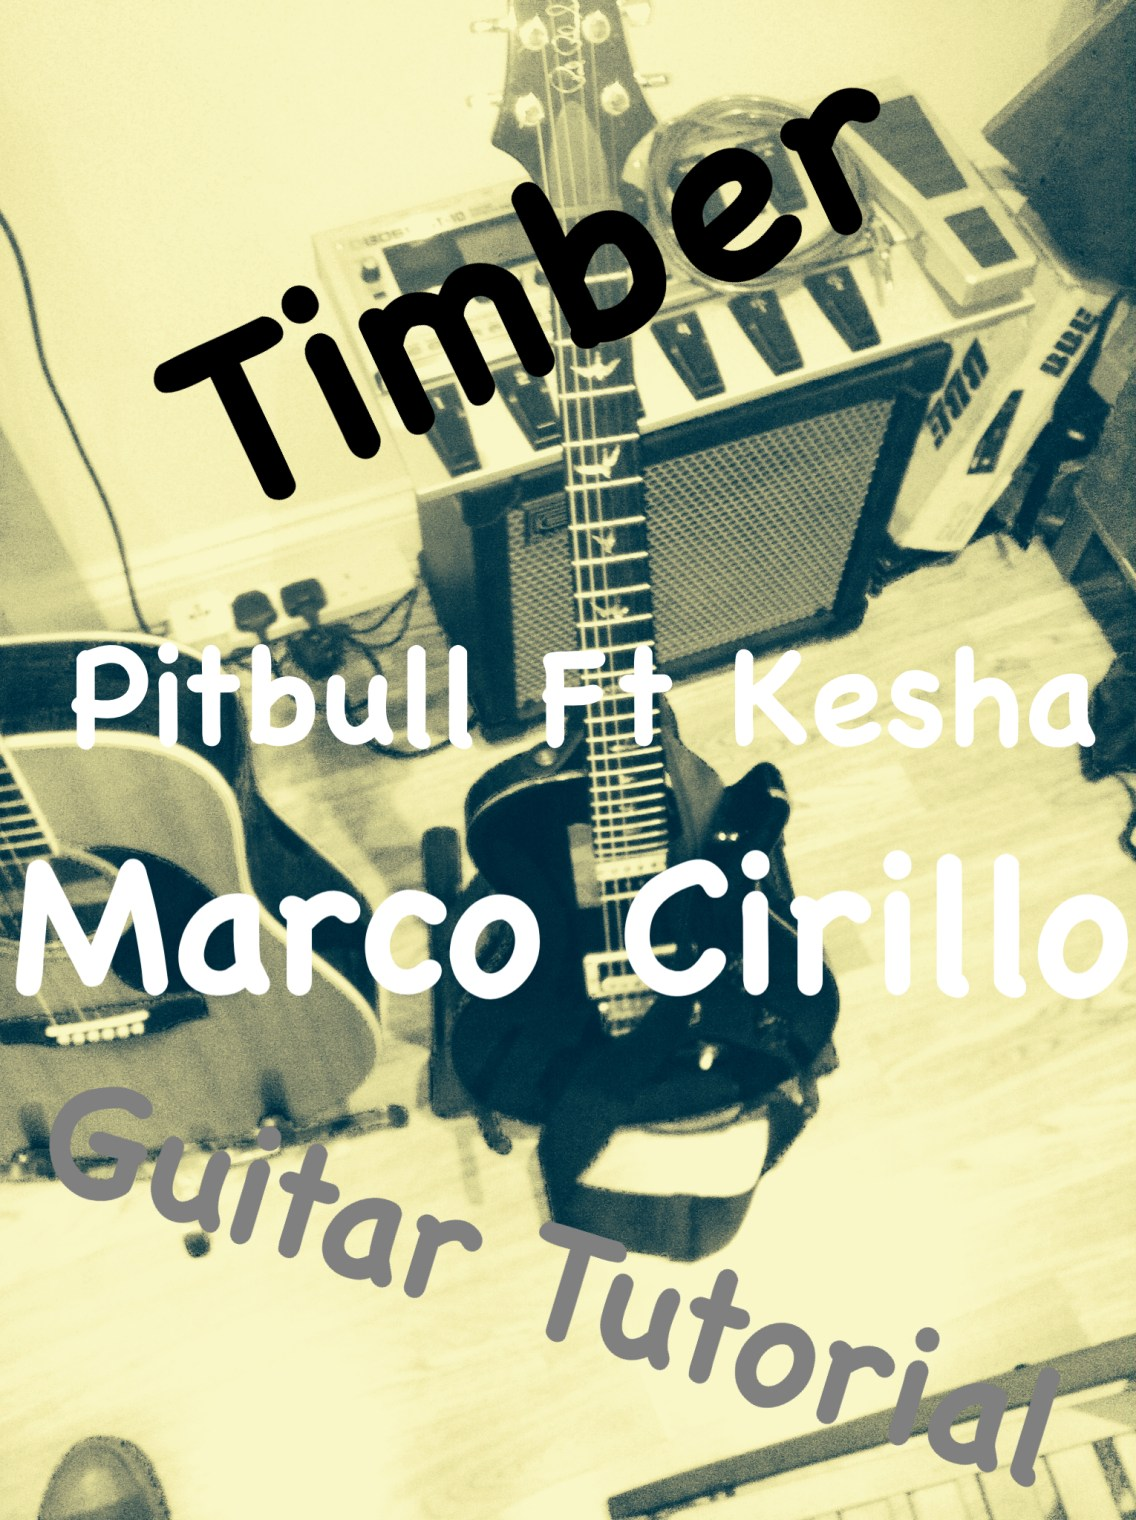 Timber - Pitbull Ft Kesha - Guitar Lesson - Timber Guitar Tutorial - Free Online Guitar Lesson with Marco Cirillo Guitar Teacher in London